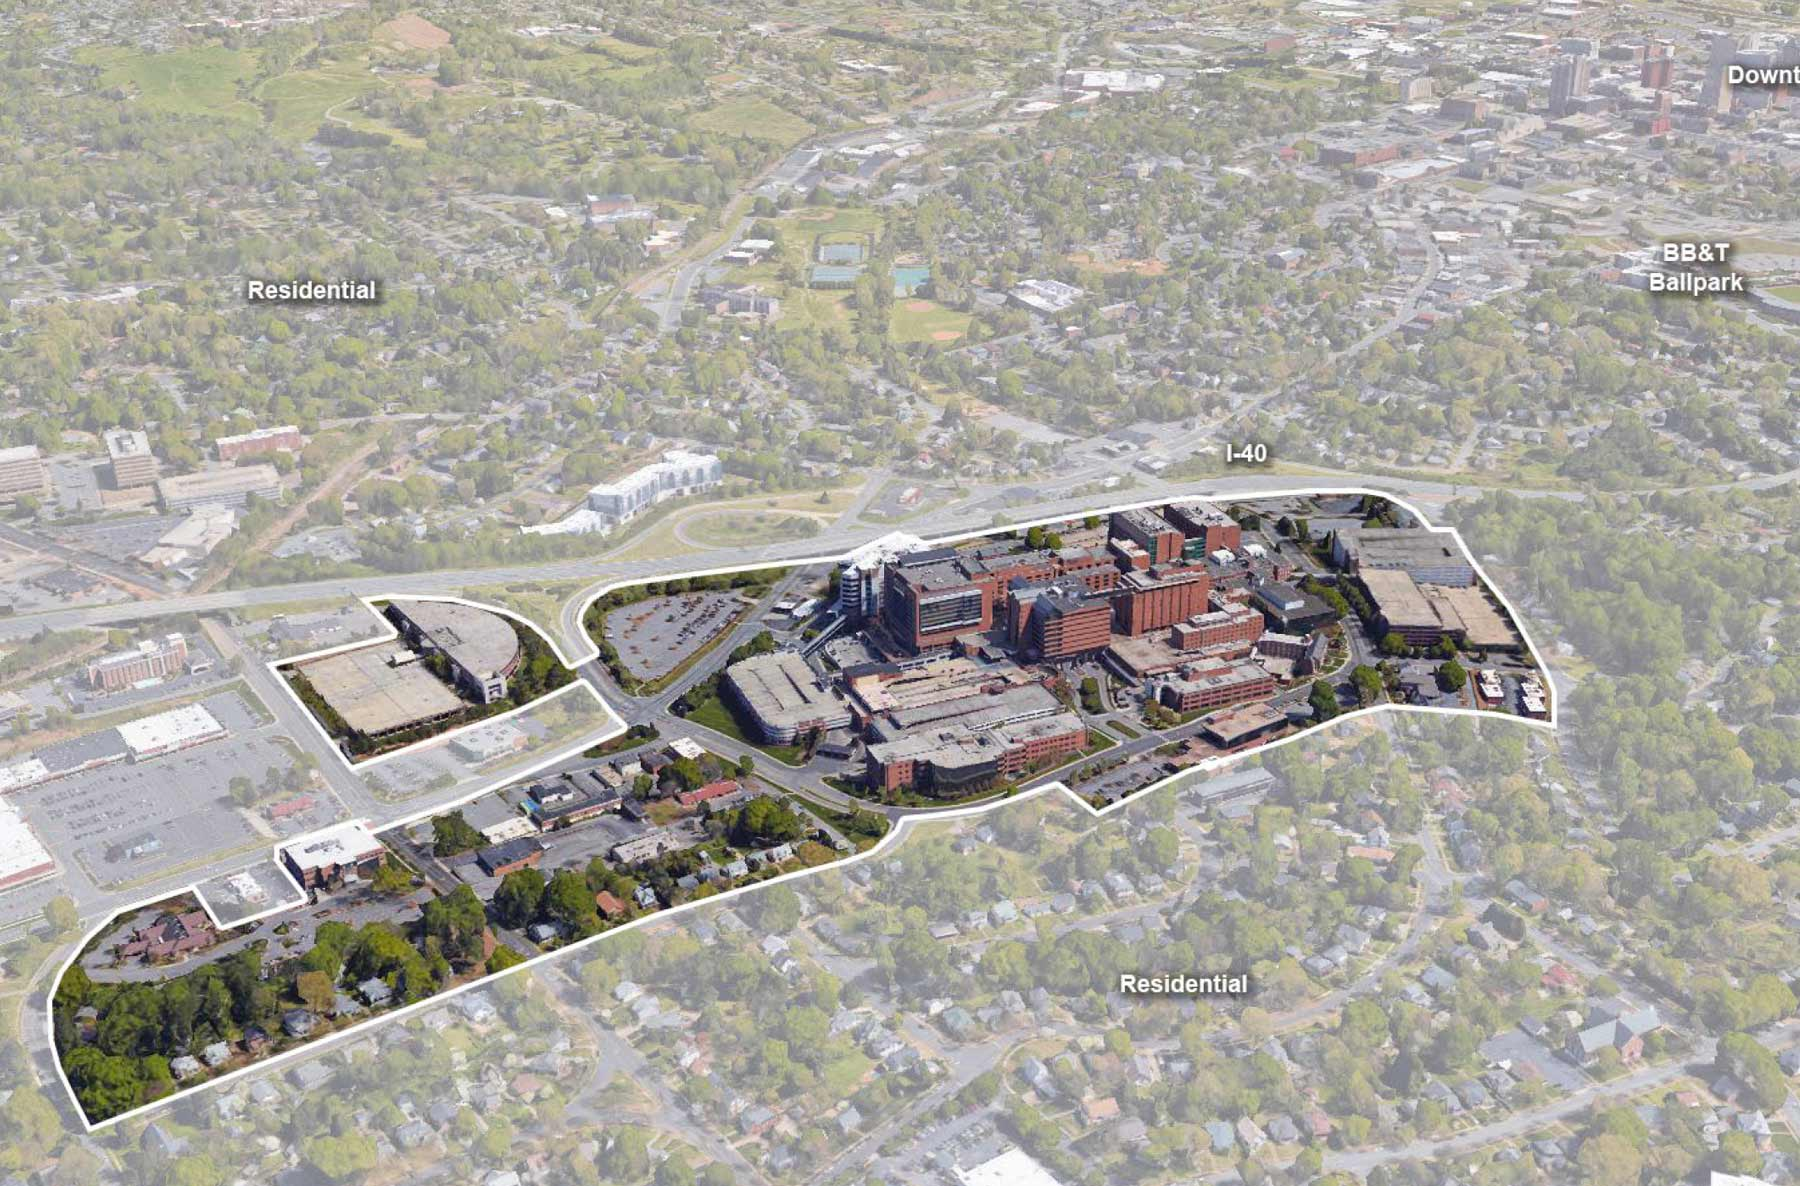 Wake Forest Baptist Medical Center - Master Site and Facilities Plan